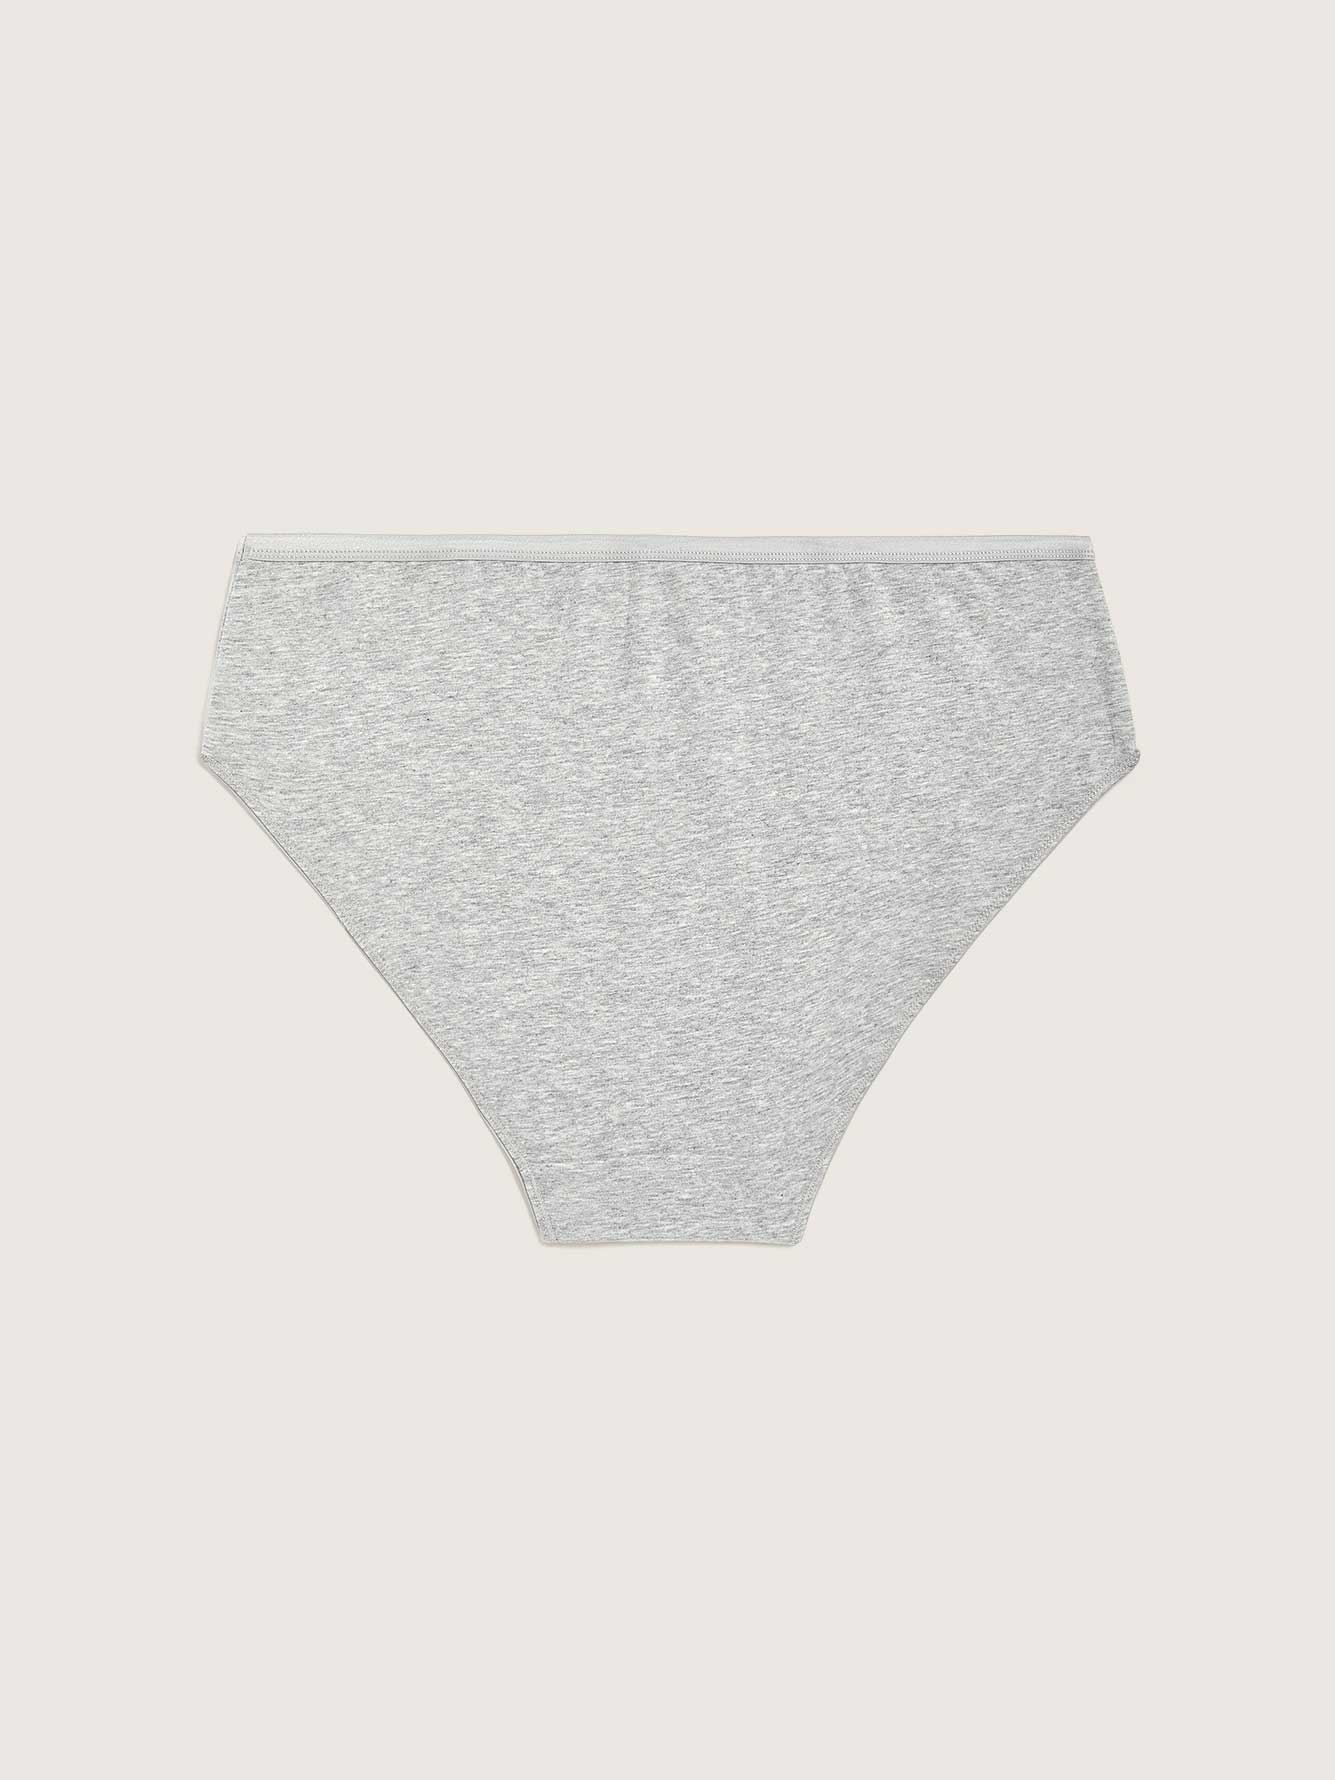 Heathered Cotton High Cut Panty - Addition Elle